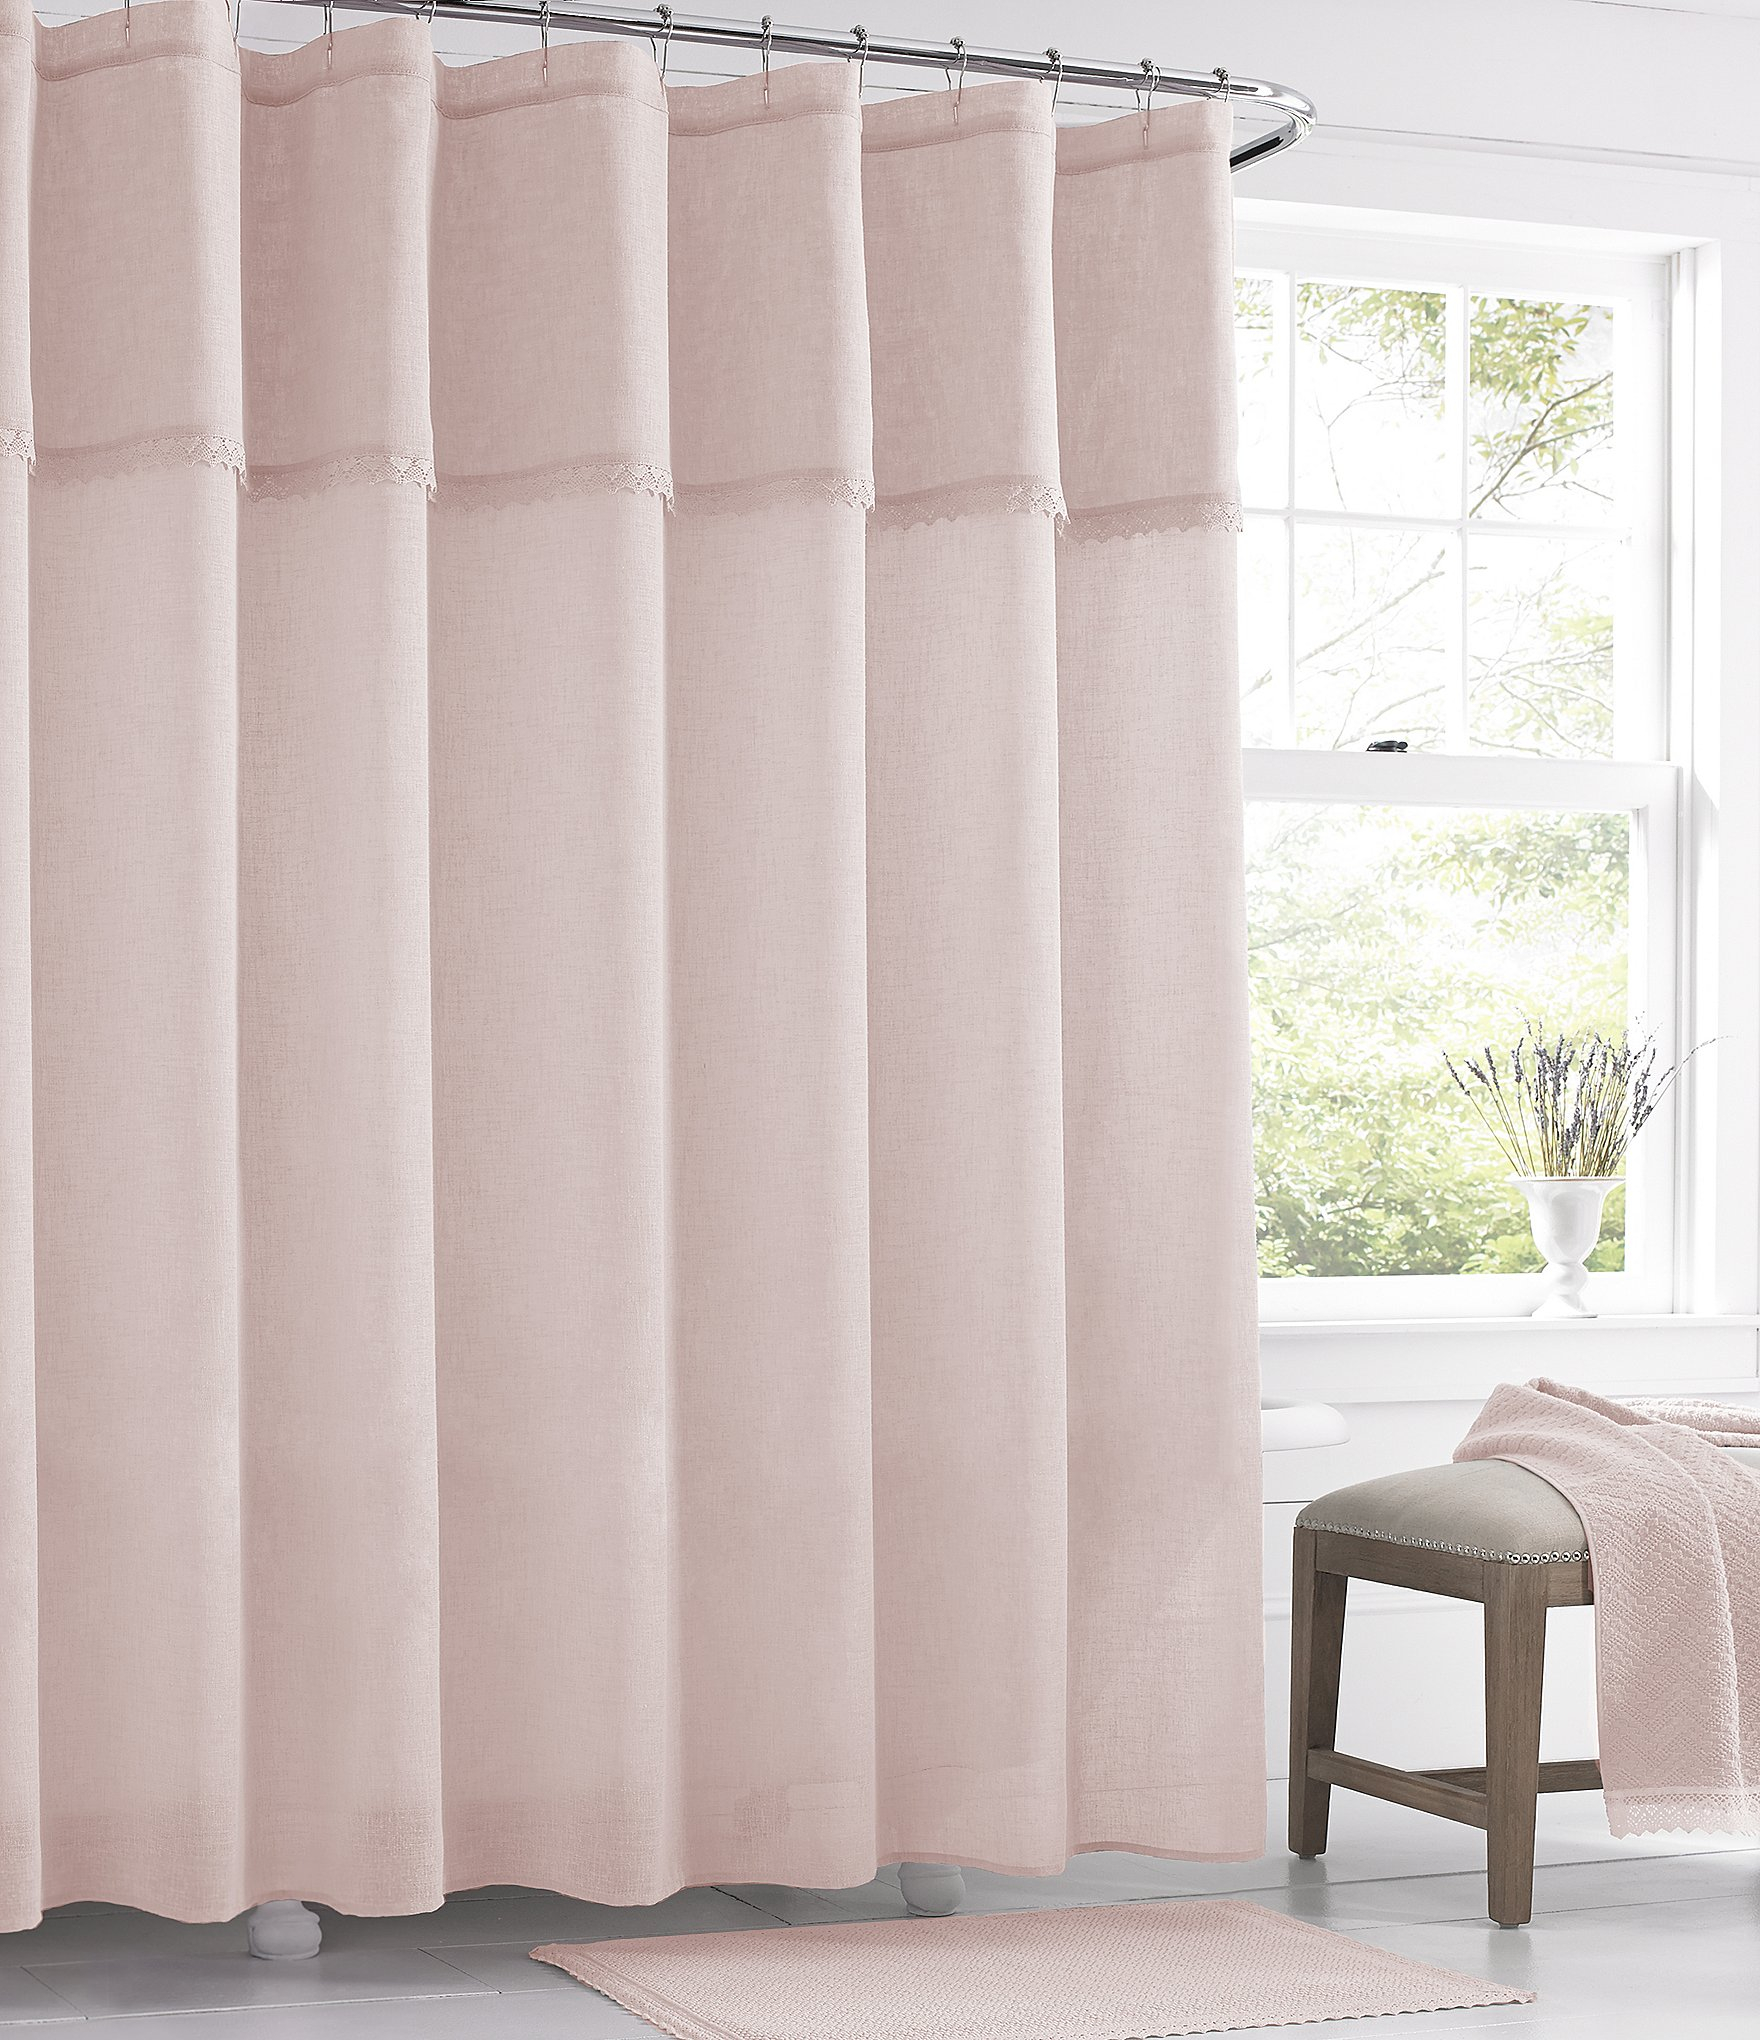 pleasurable plum and bow curtains. Home Bath Personal Care Shower Curtains Rings Dillards regarding  proportions 1760 X 2040 Crochet Curtain Ideas